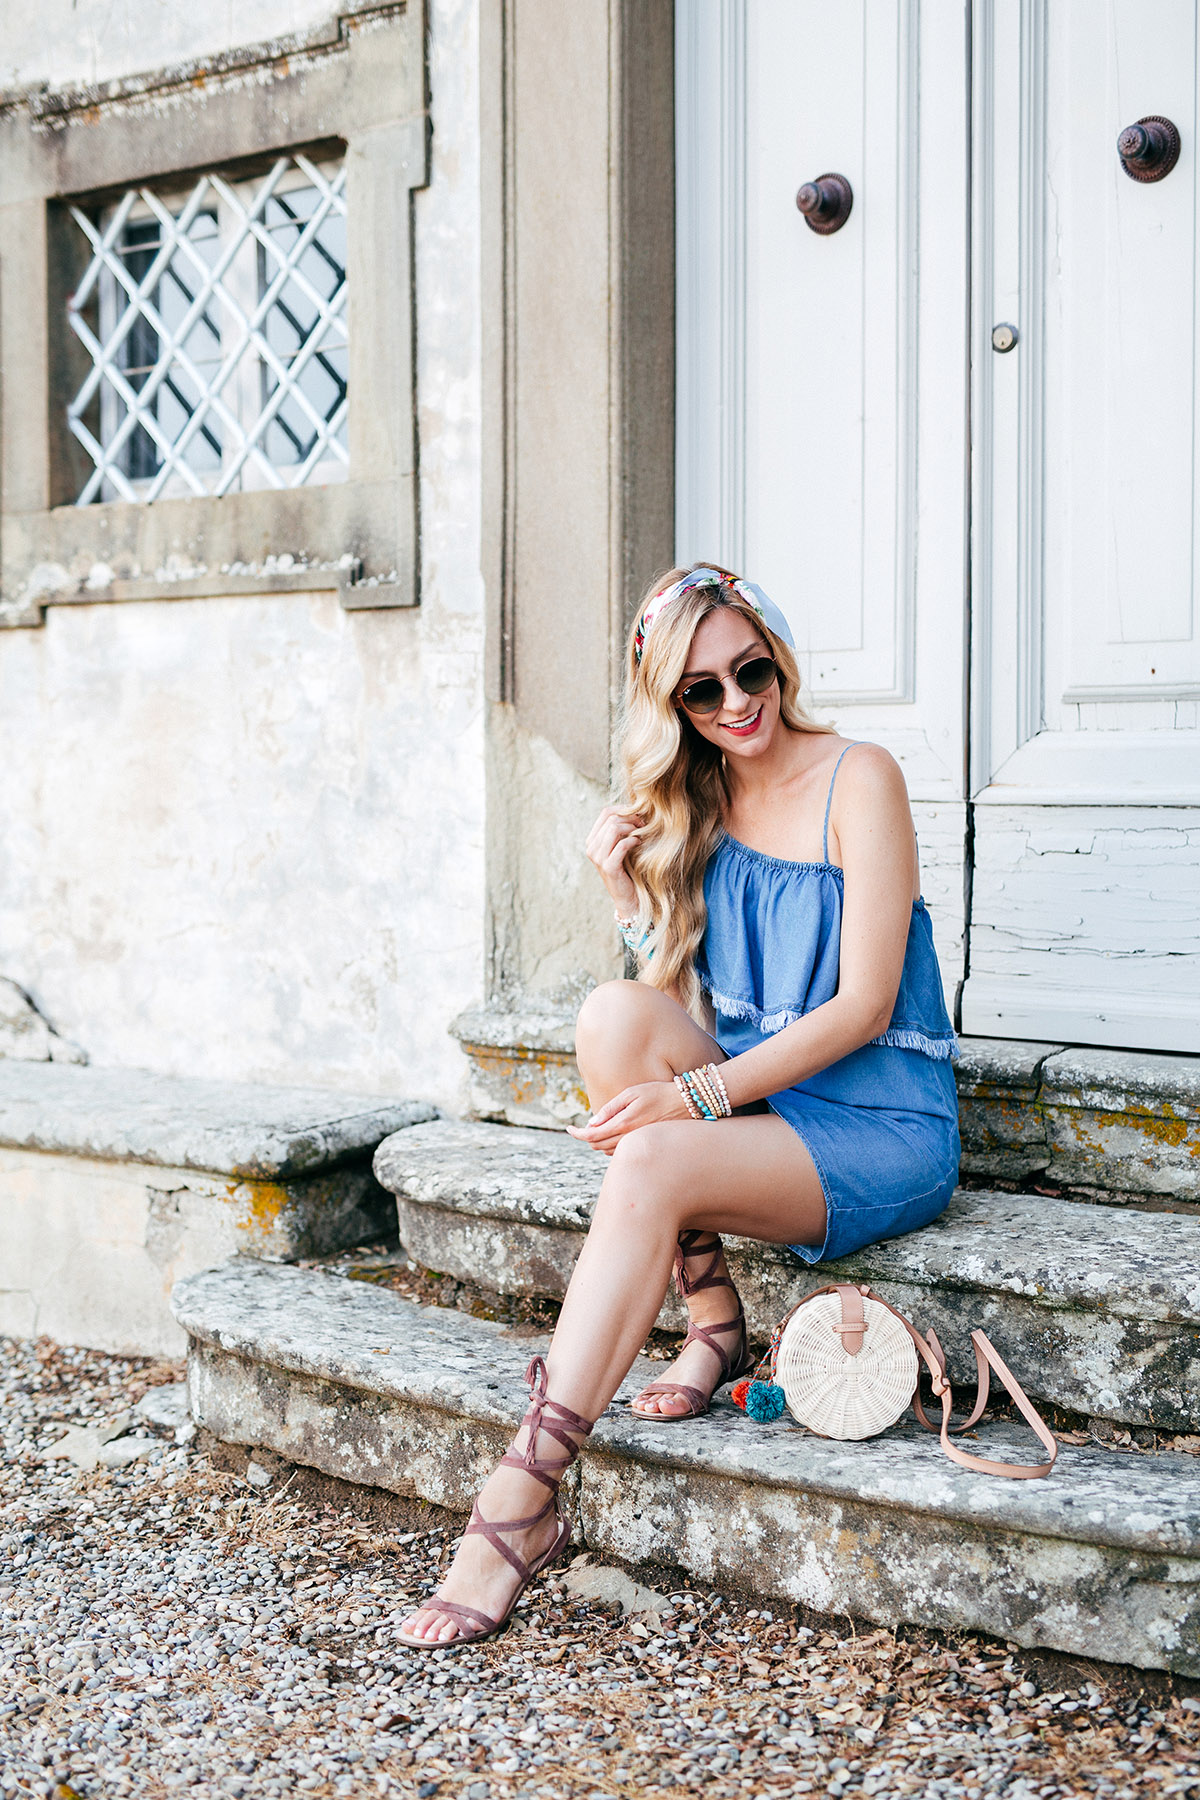 Summer Chambray Dress Styles | Summer Outfit Ideas